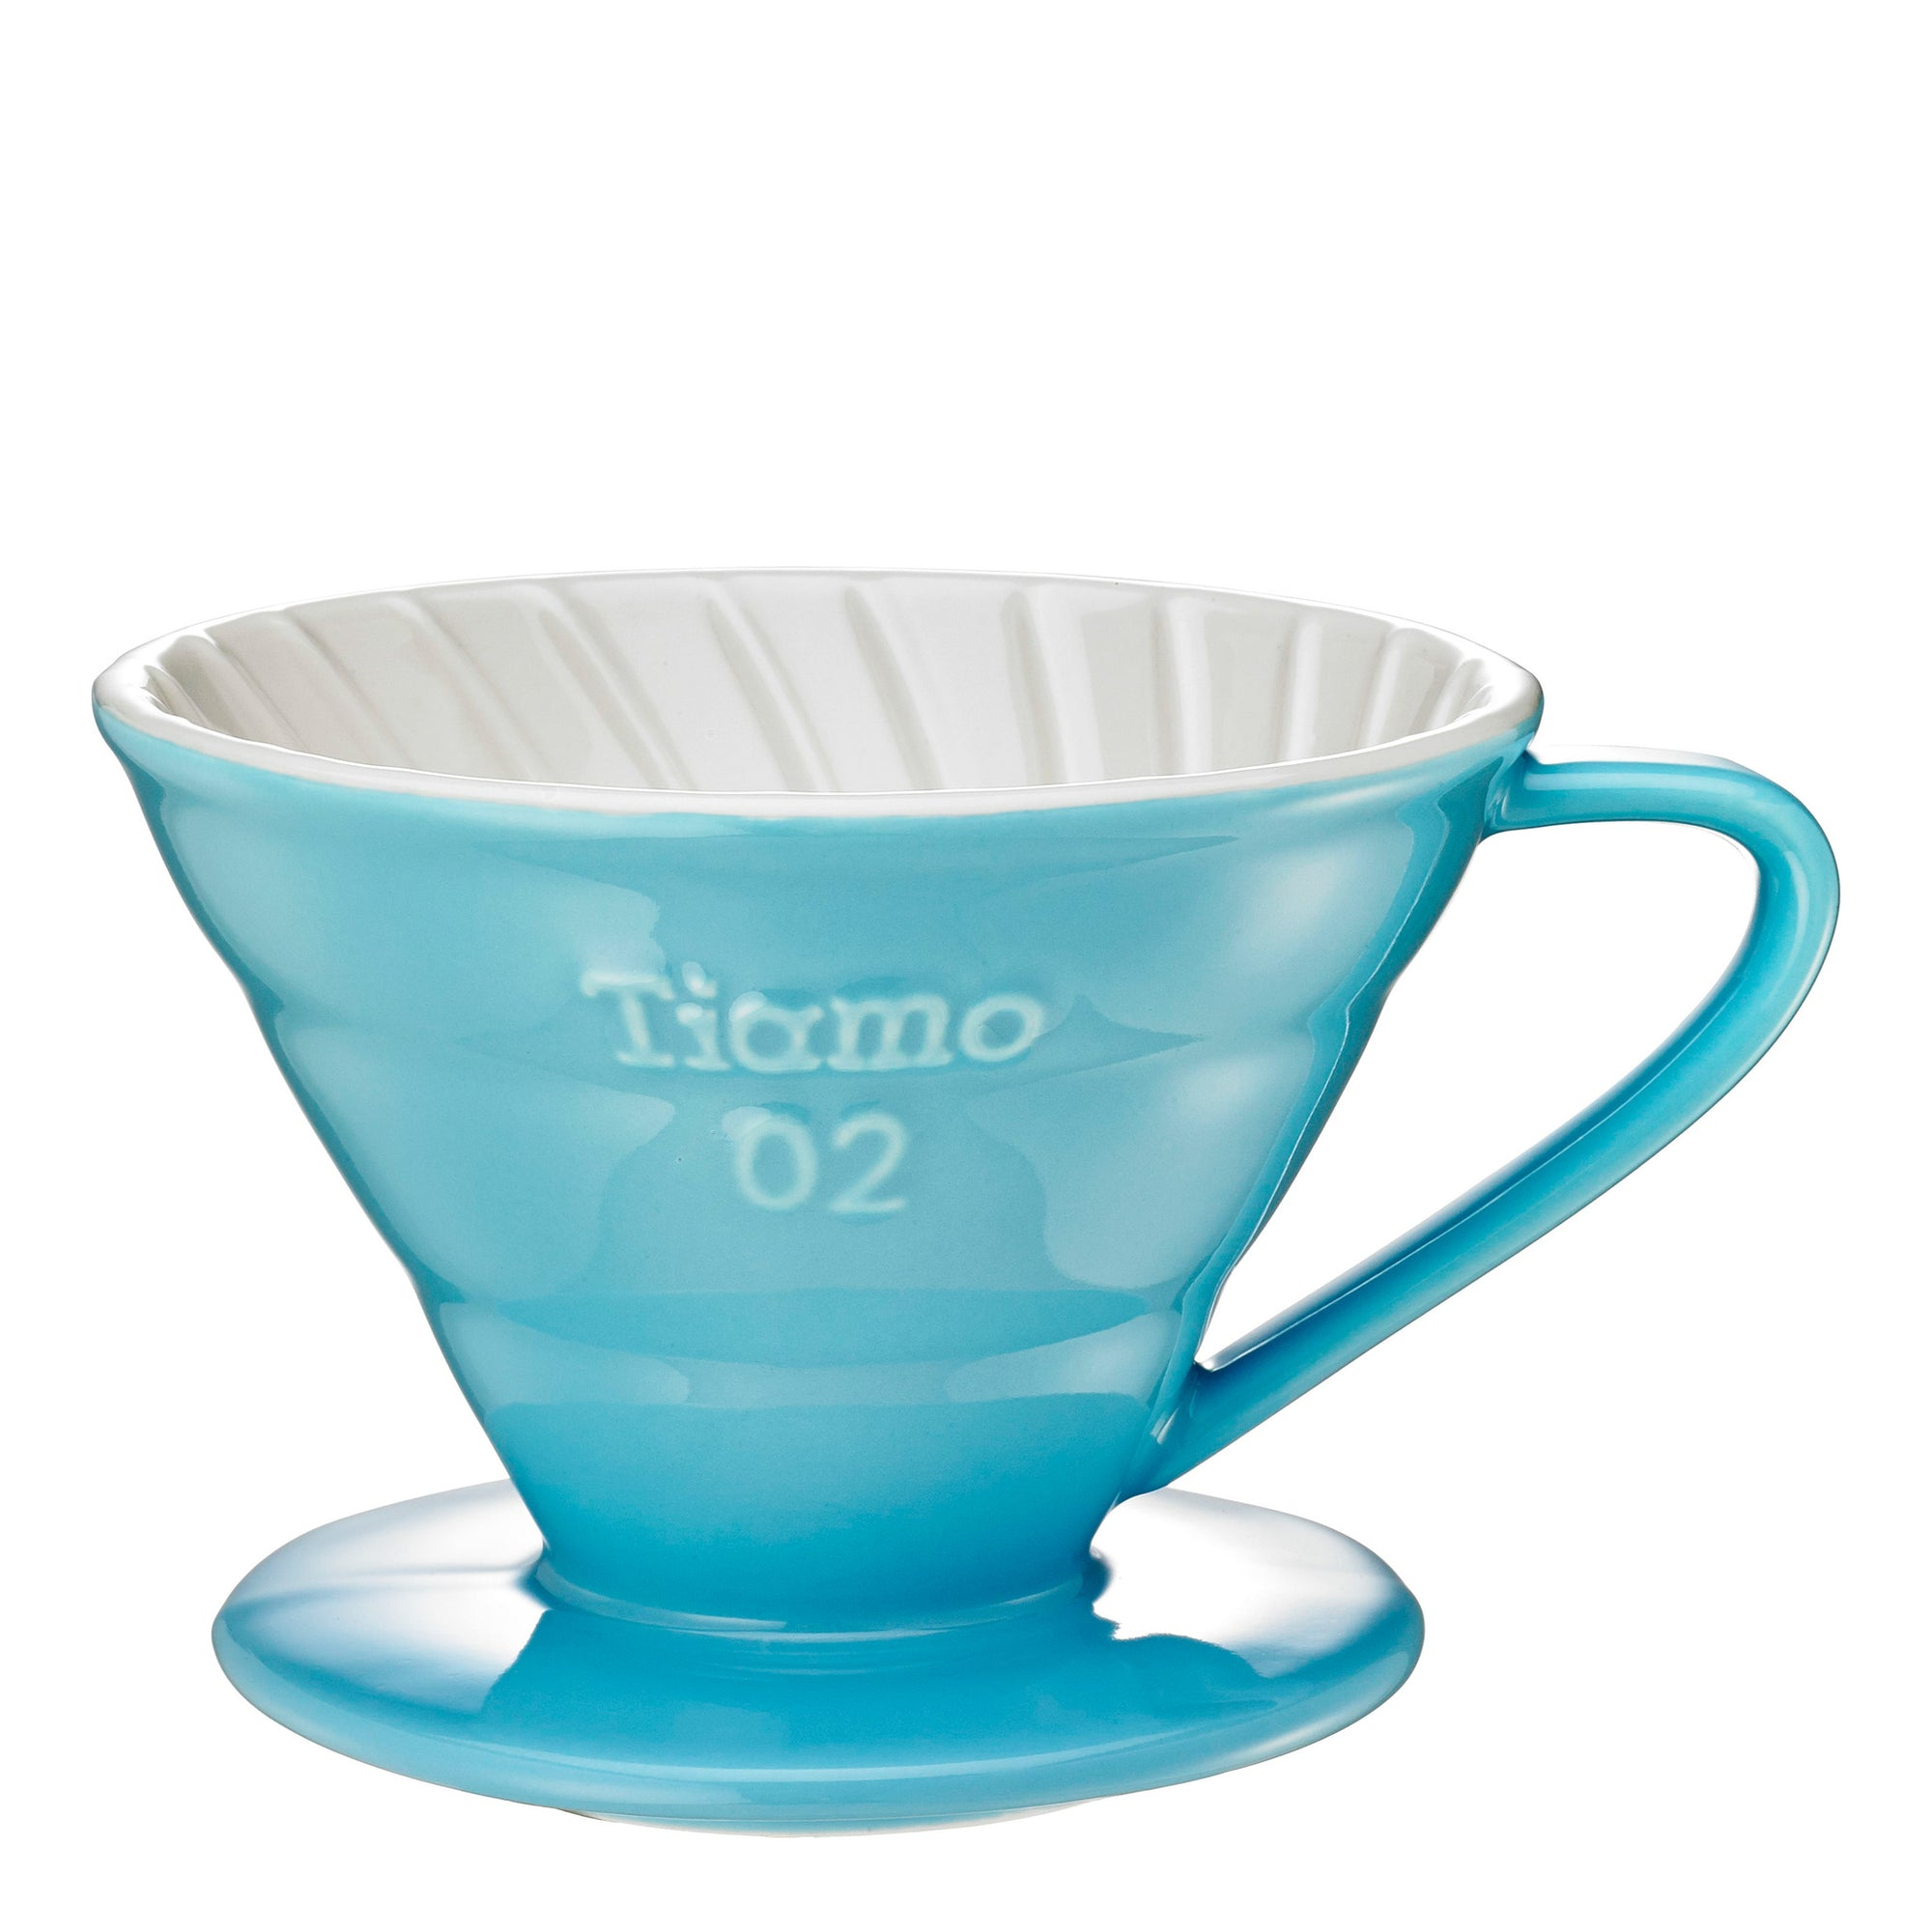 Tiamo V02 Ceramic Filter - Blue - Espresso Gear